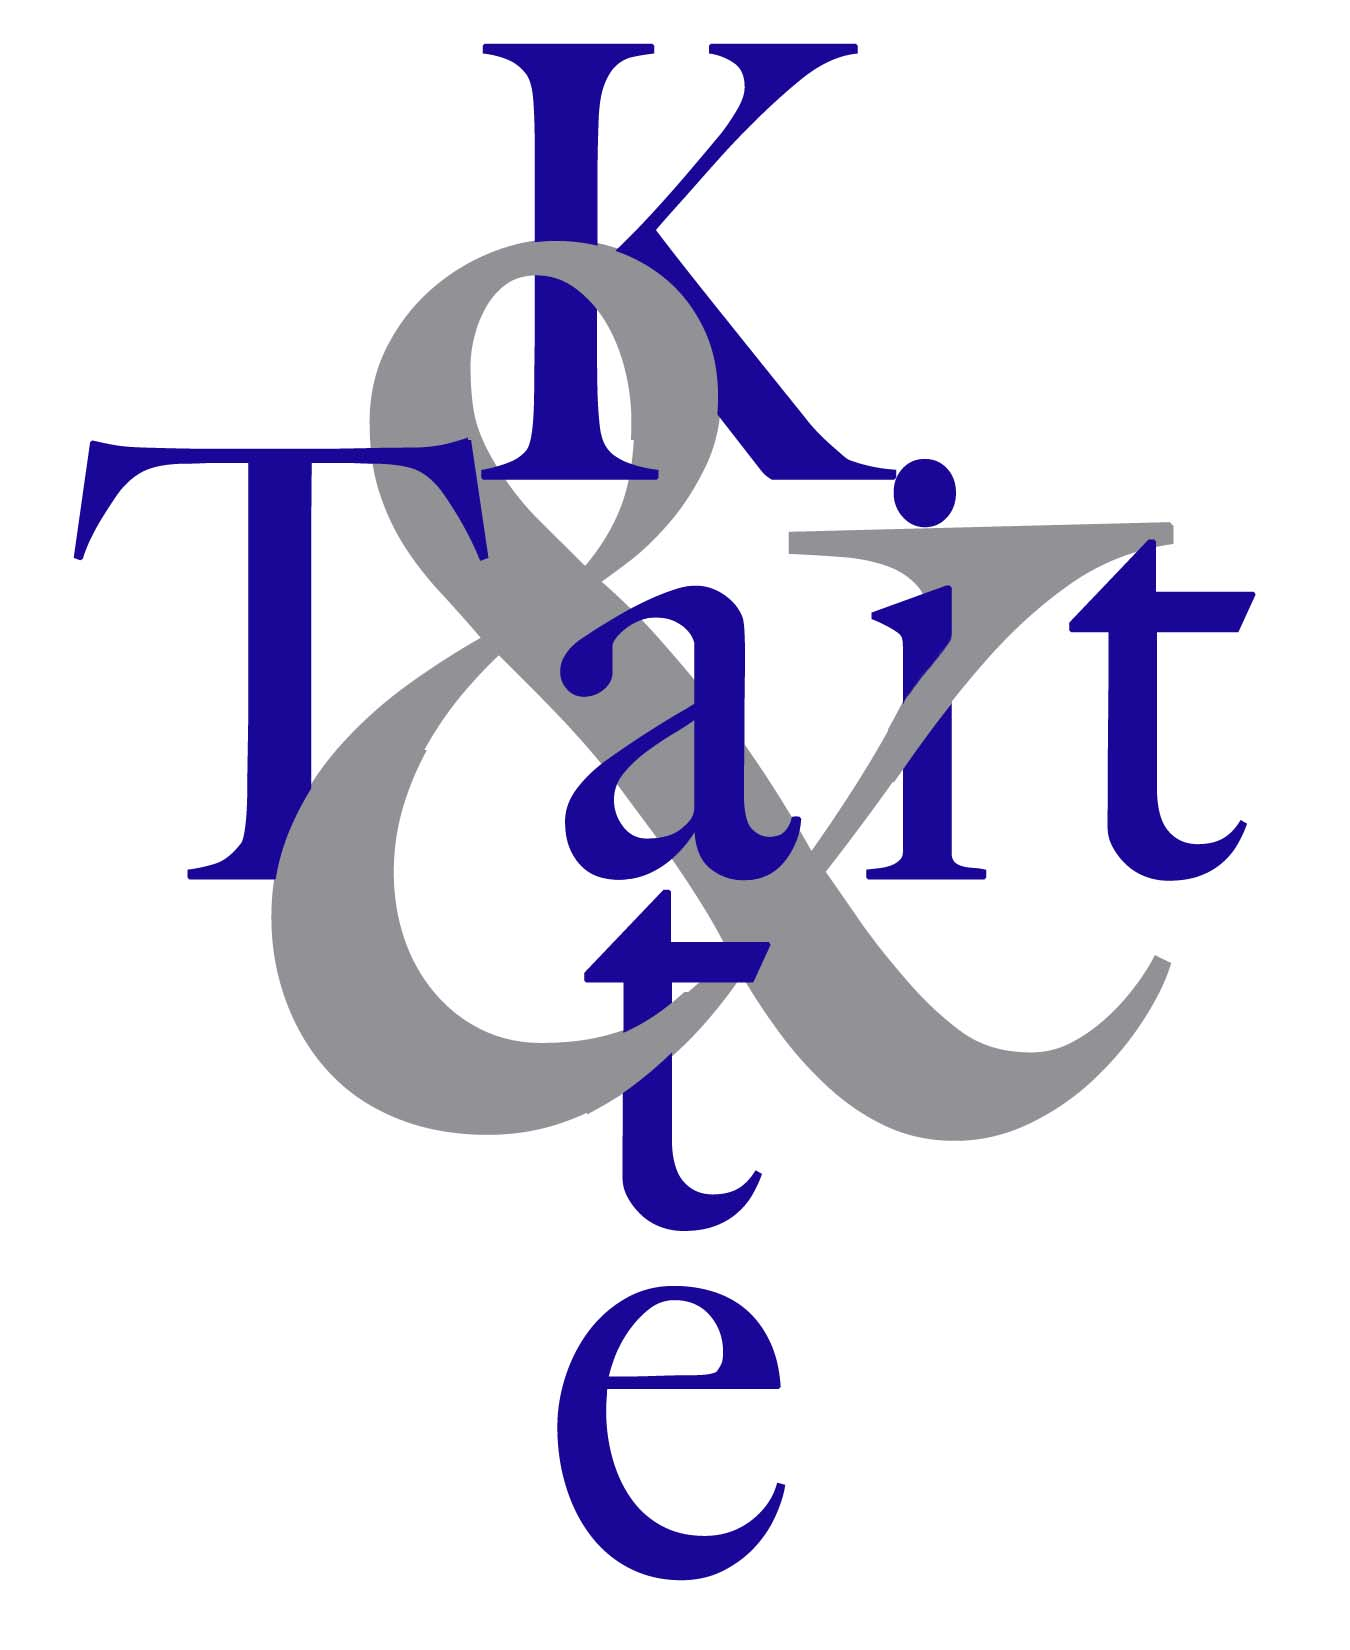 Tait & Kate